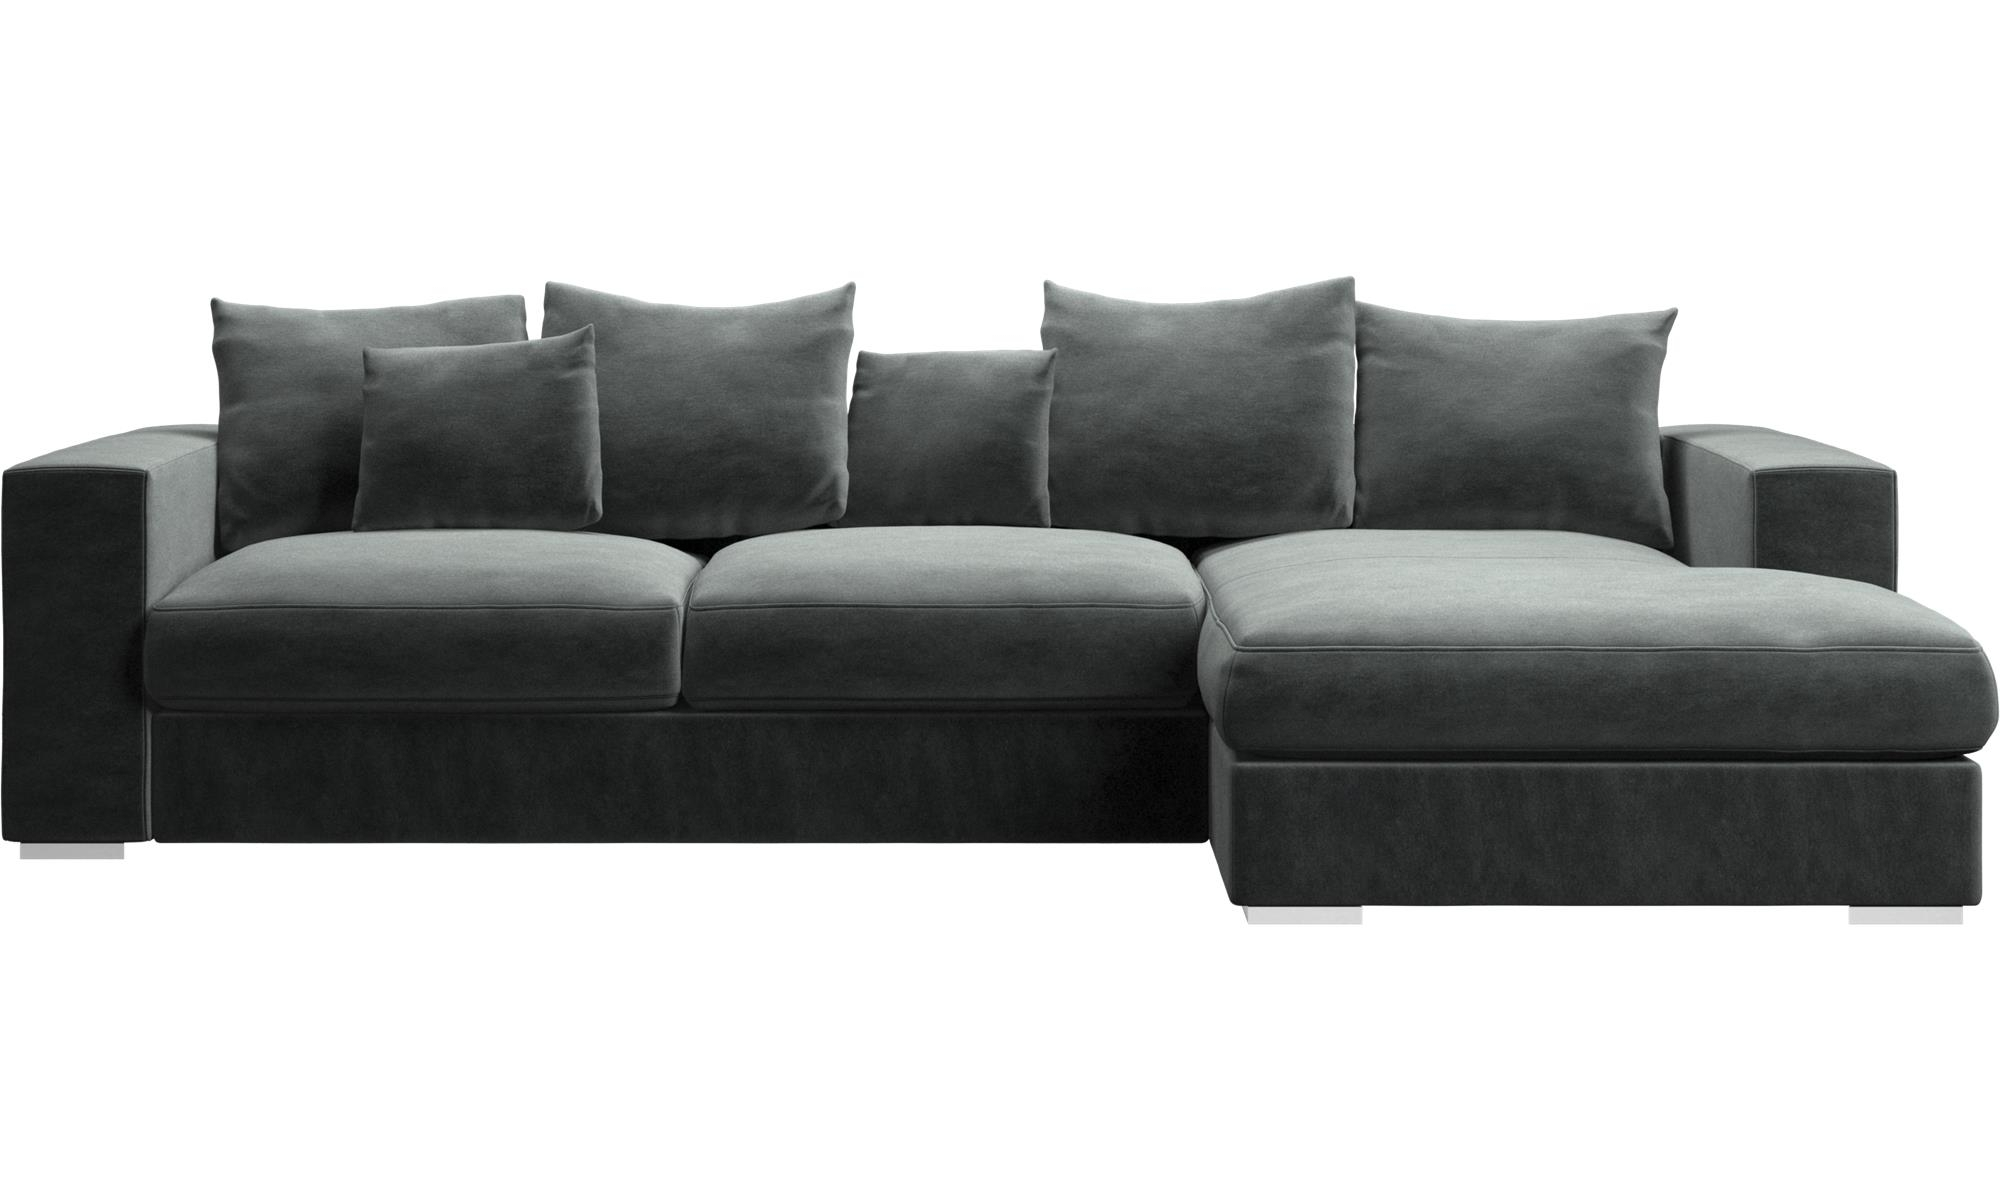 Chaise Lounge Sofas Pertaining To Recent Chaise Lounge Sofas – Cenova Sofa With Resting Unit – Boconcept (View 2 of 15)